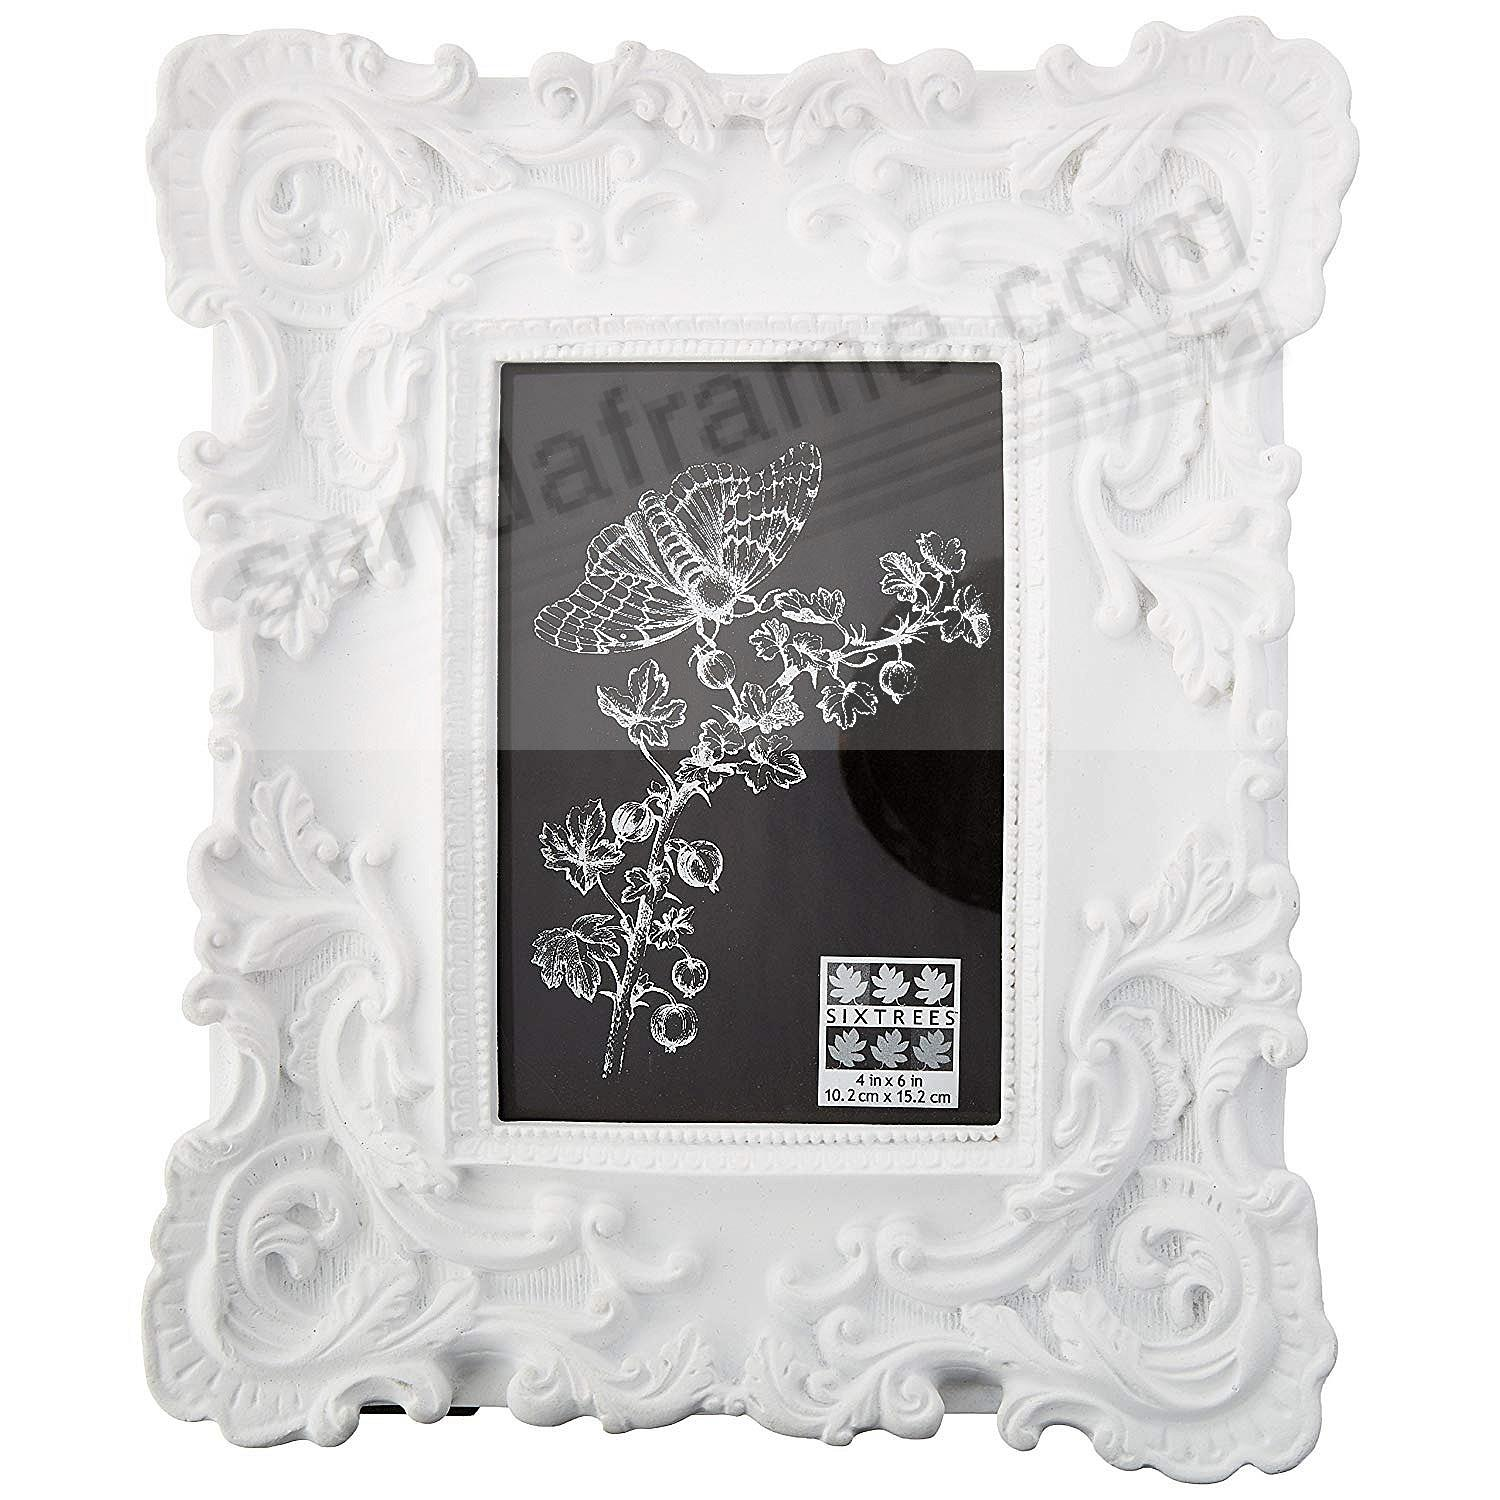 White BAROQUE frame by SIXTREES® - Picture Frames, Photo Albums ...